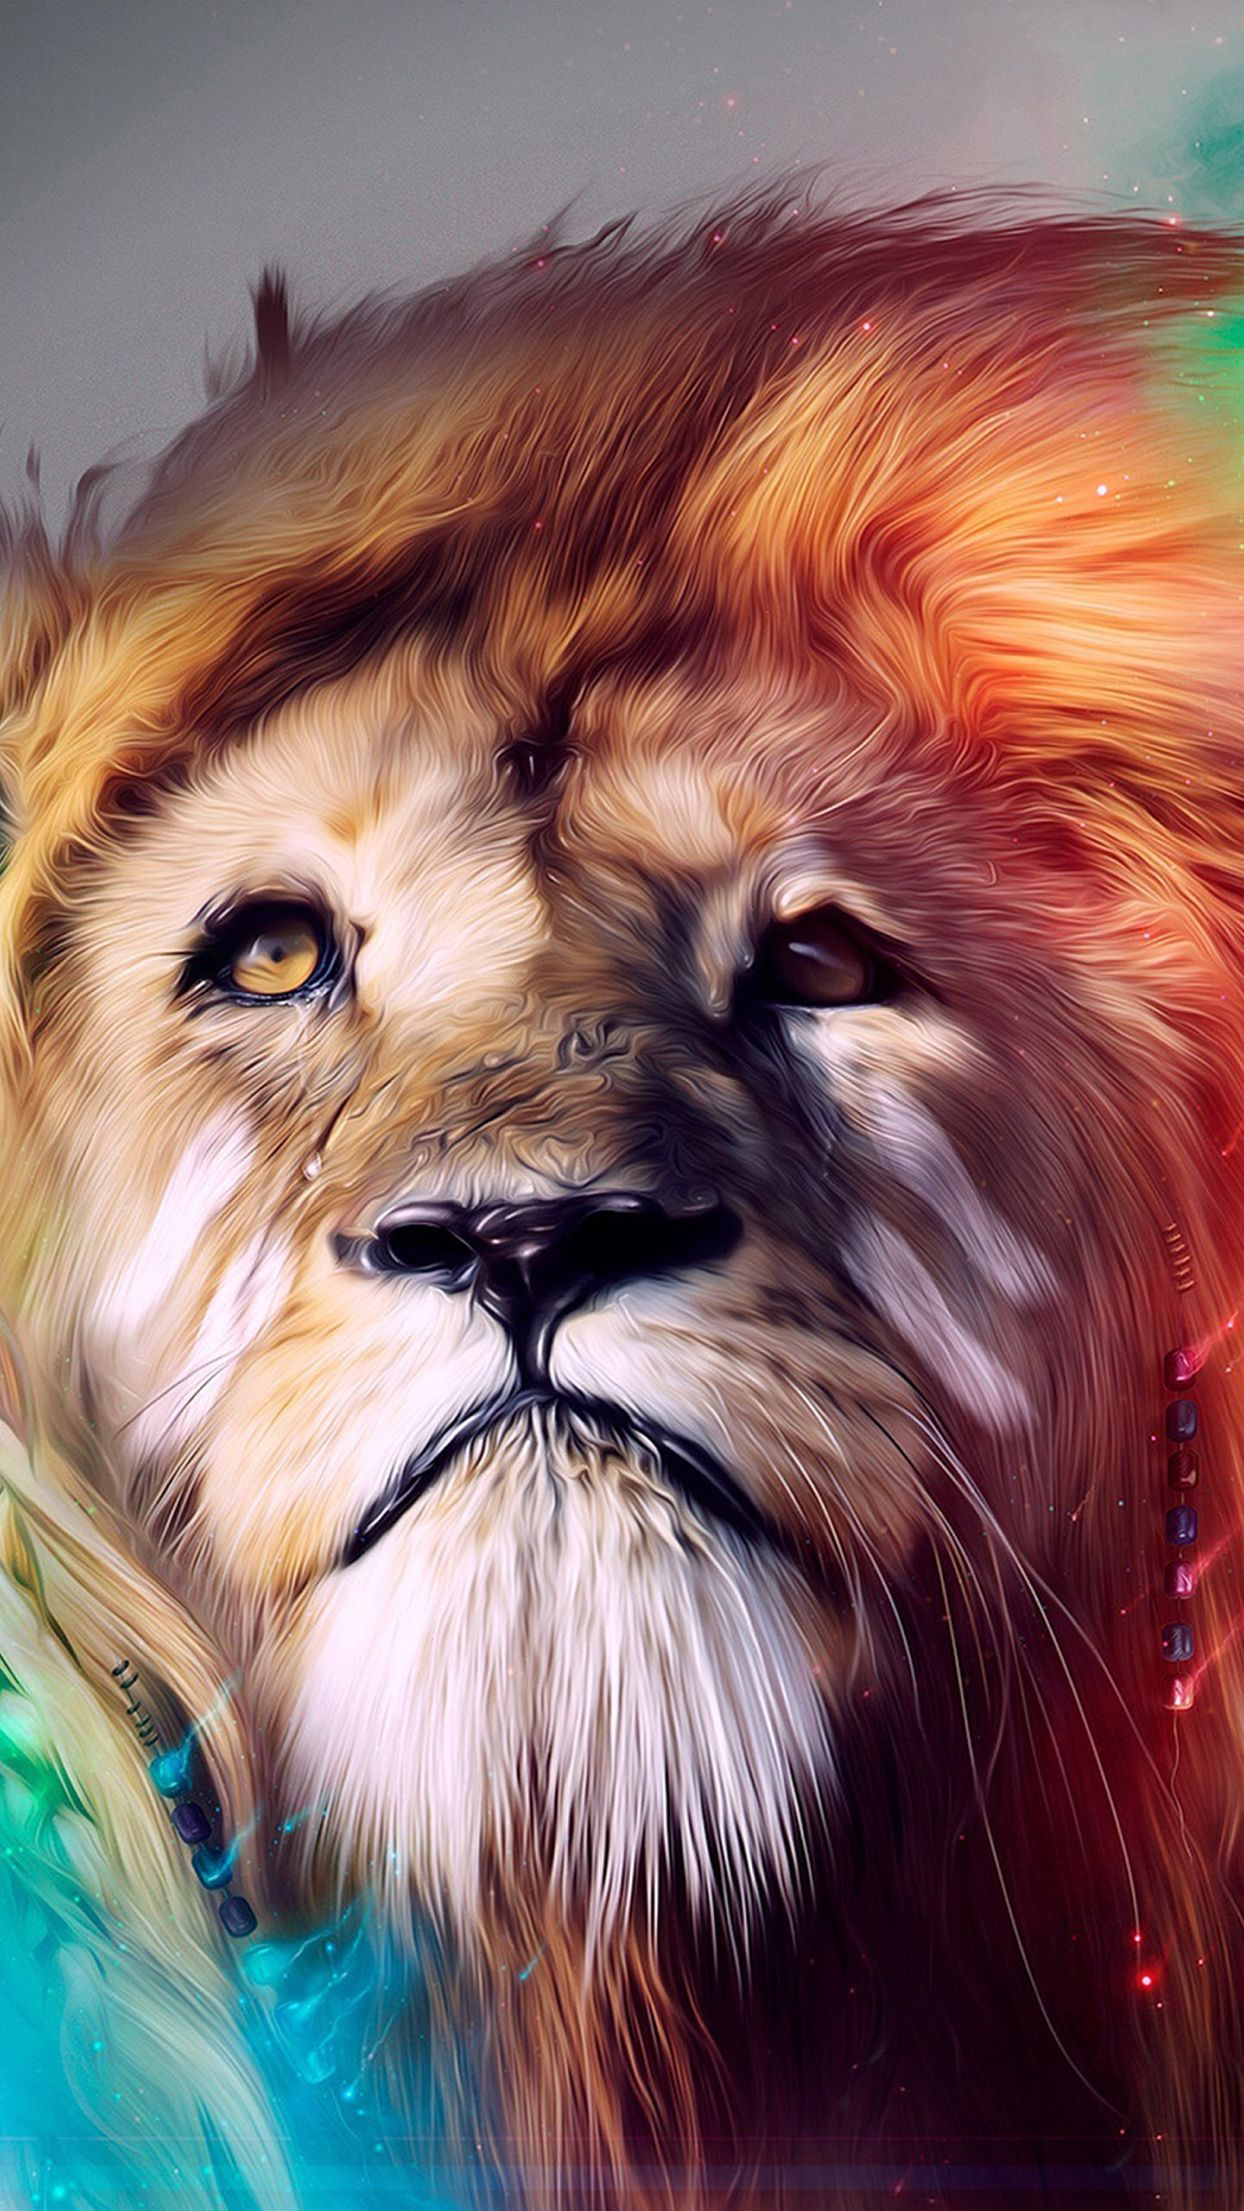 Red, Turquoise, orange, lion, abstract, apple, wallpaper